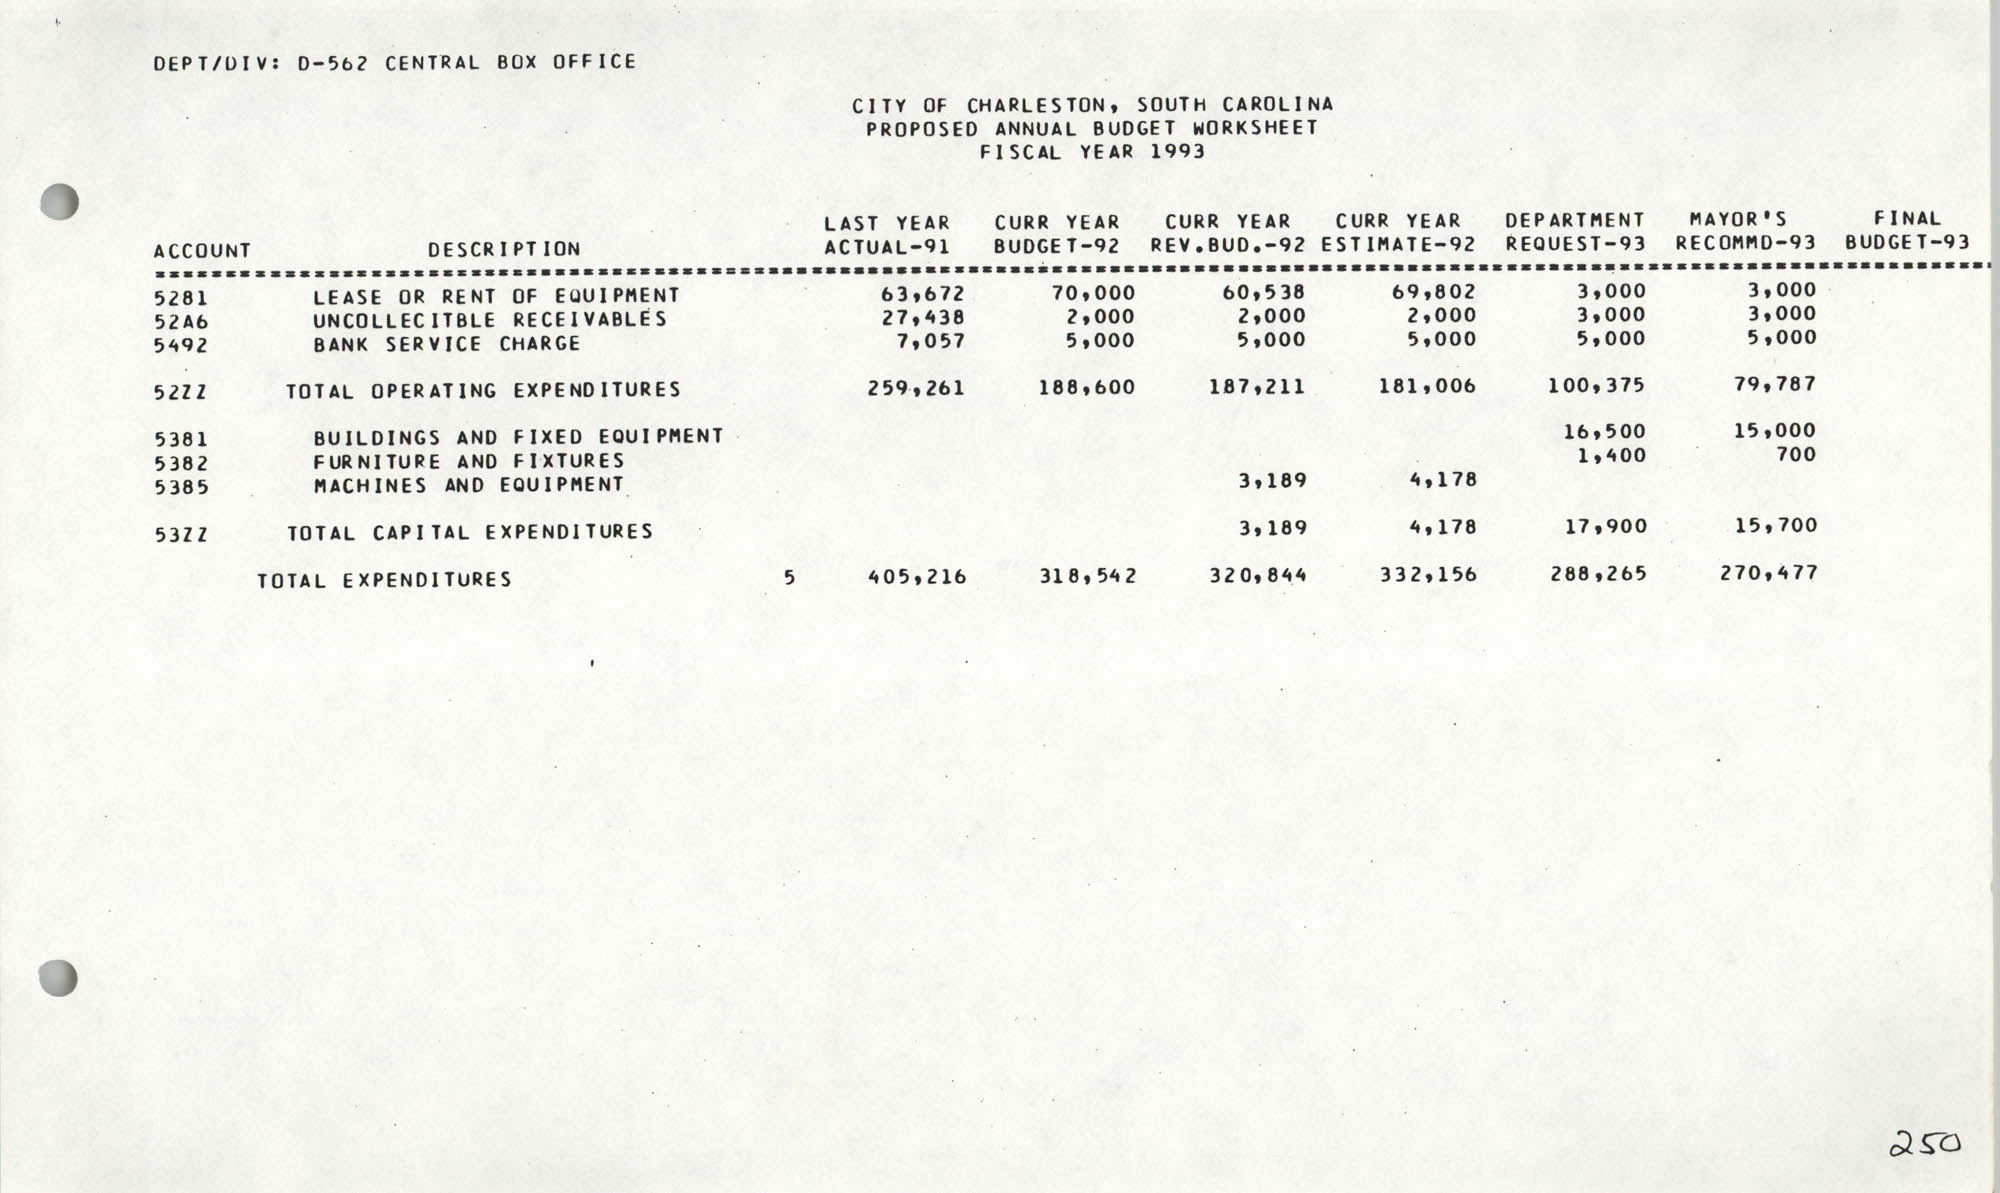 The City Council of Charleston, South Carolina, 1993 Budget, Page 250